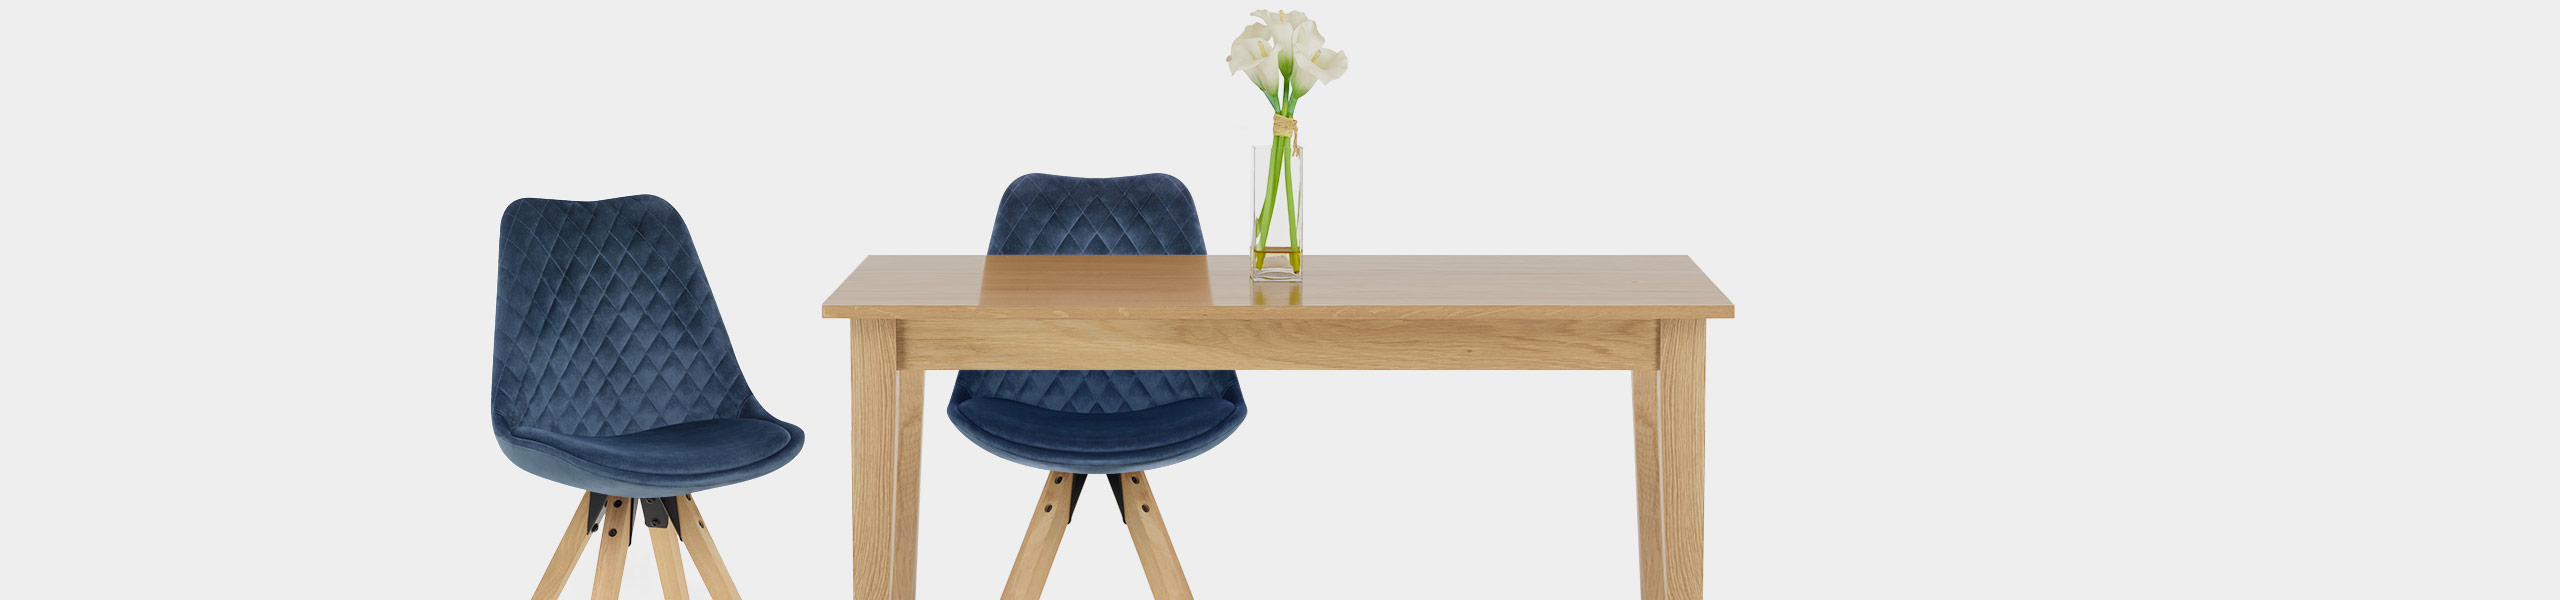 Prism Dining Chair Blue Velvet Video Banner